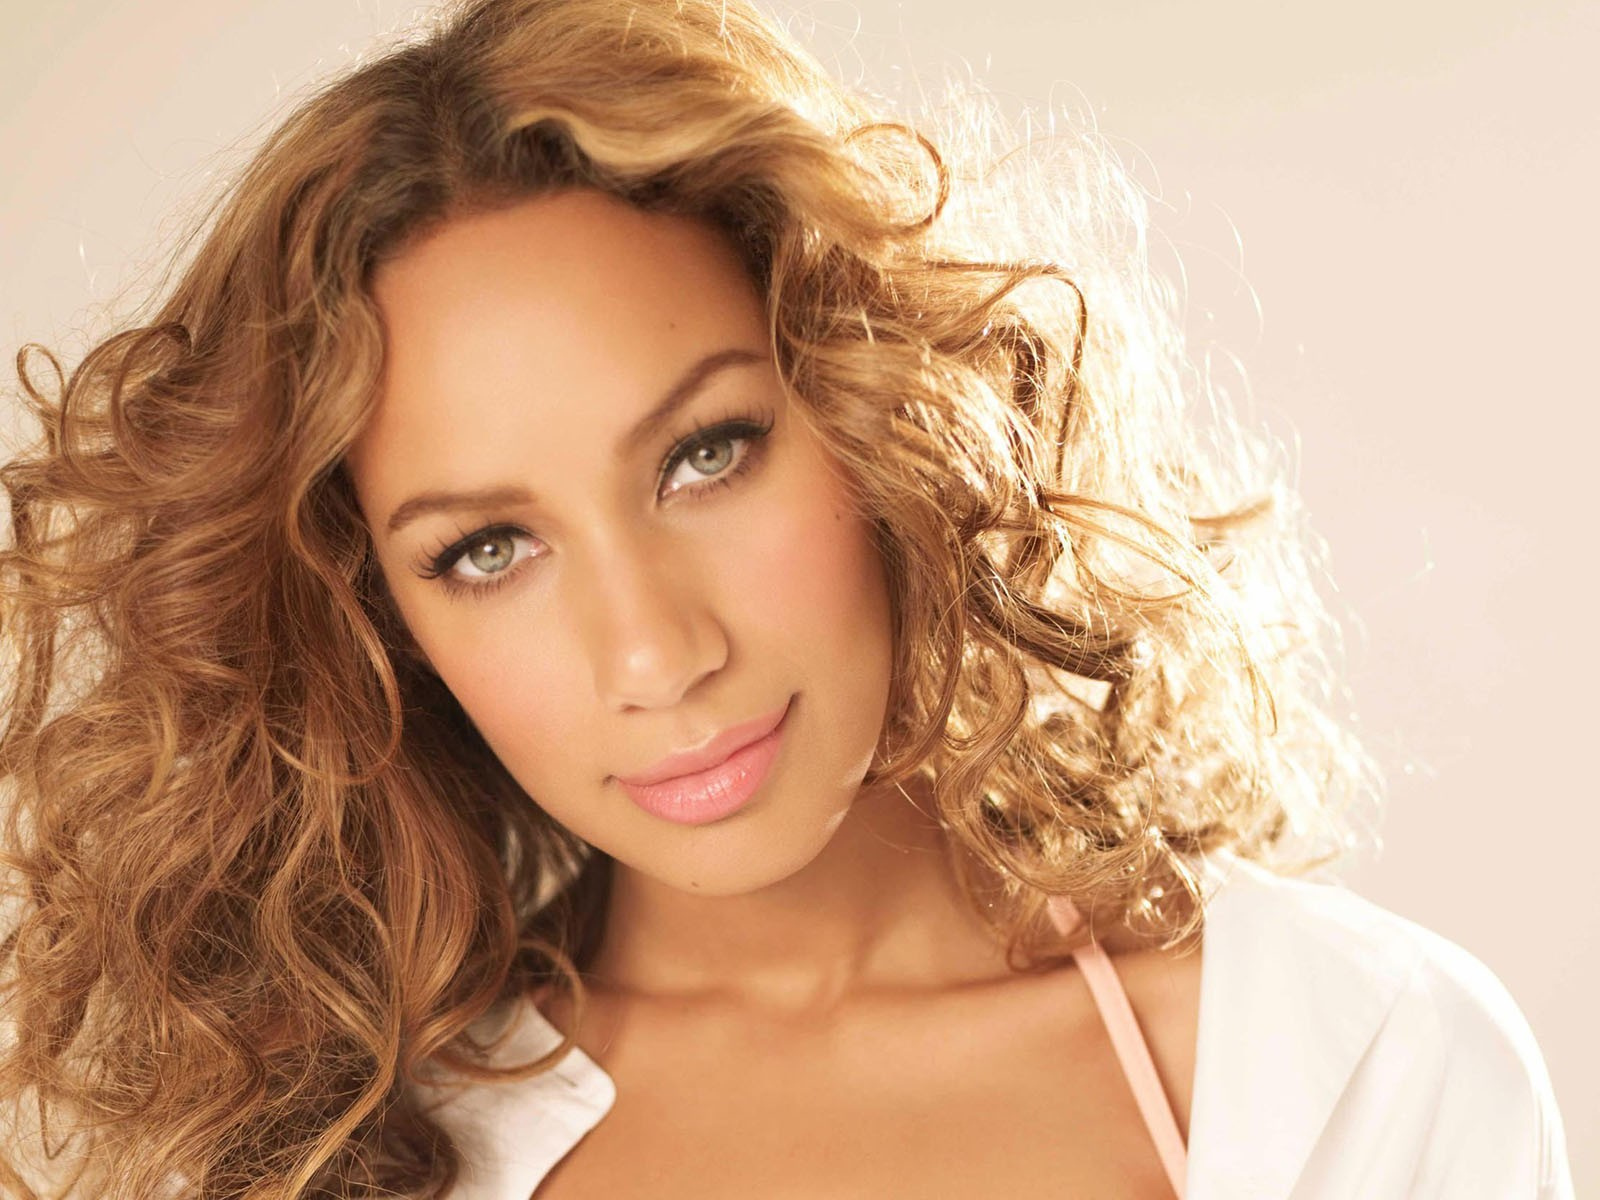 Hd Dazzling Picture Leona Lewis Download